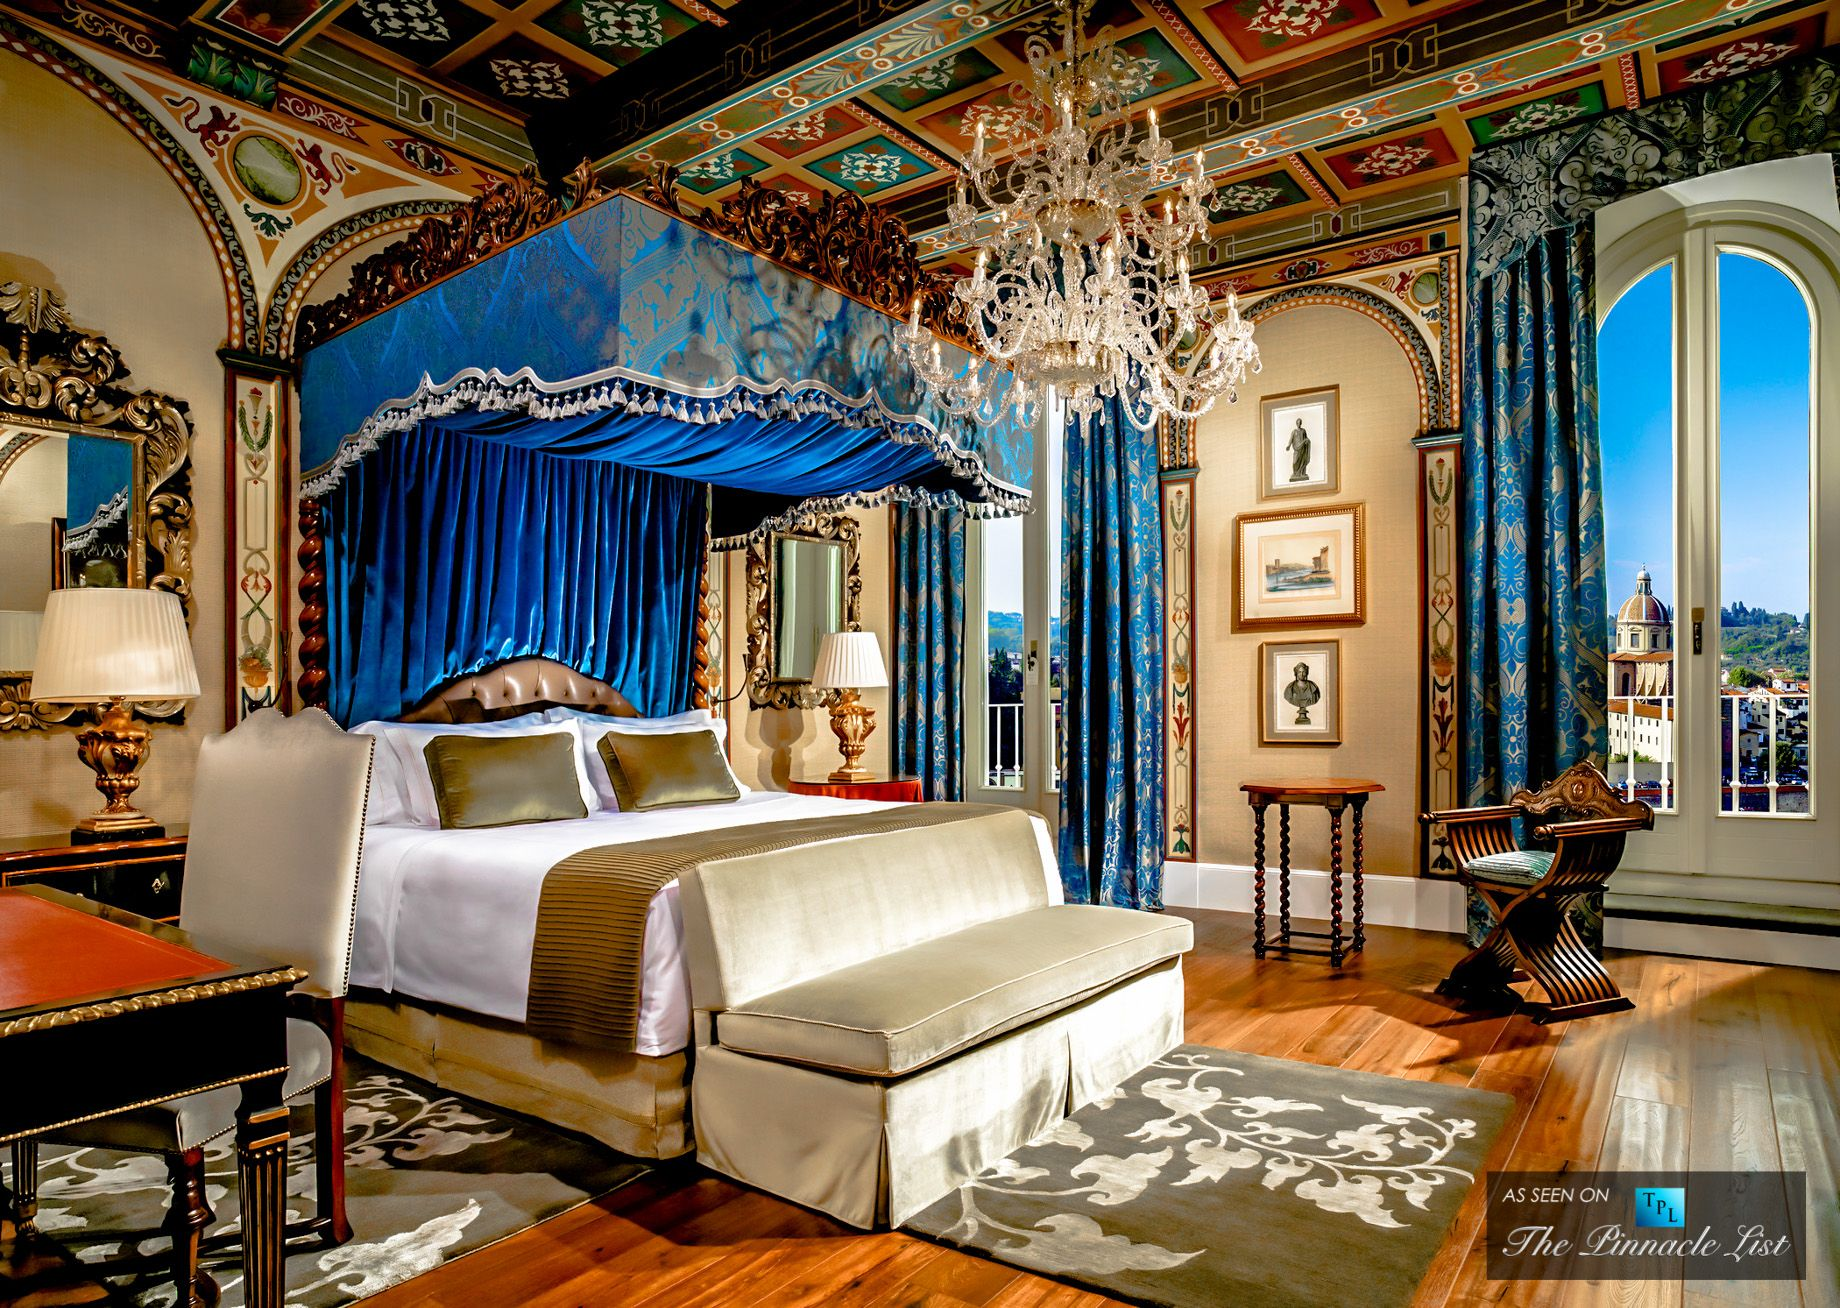 St Regis Luxury Hotel Florence Italy Royal Suite Gioconda Master Bedroom Classic